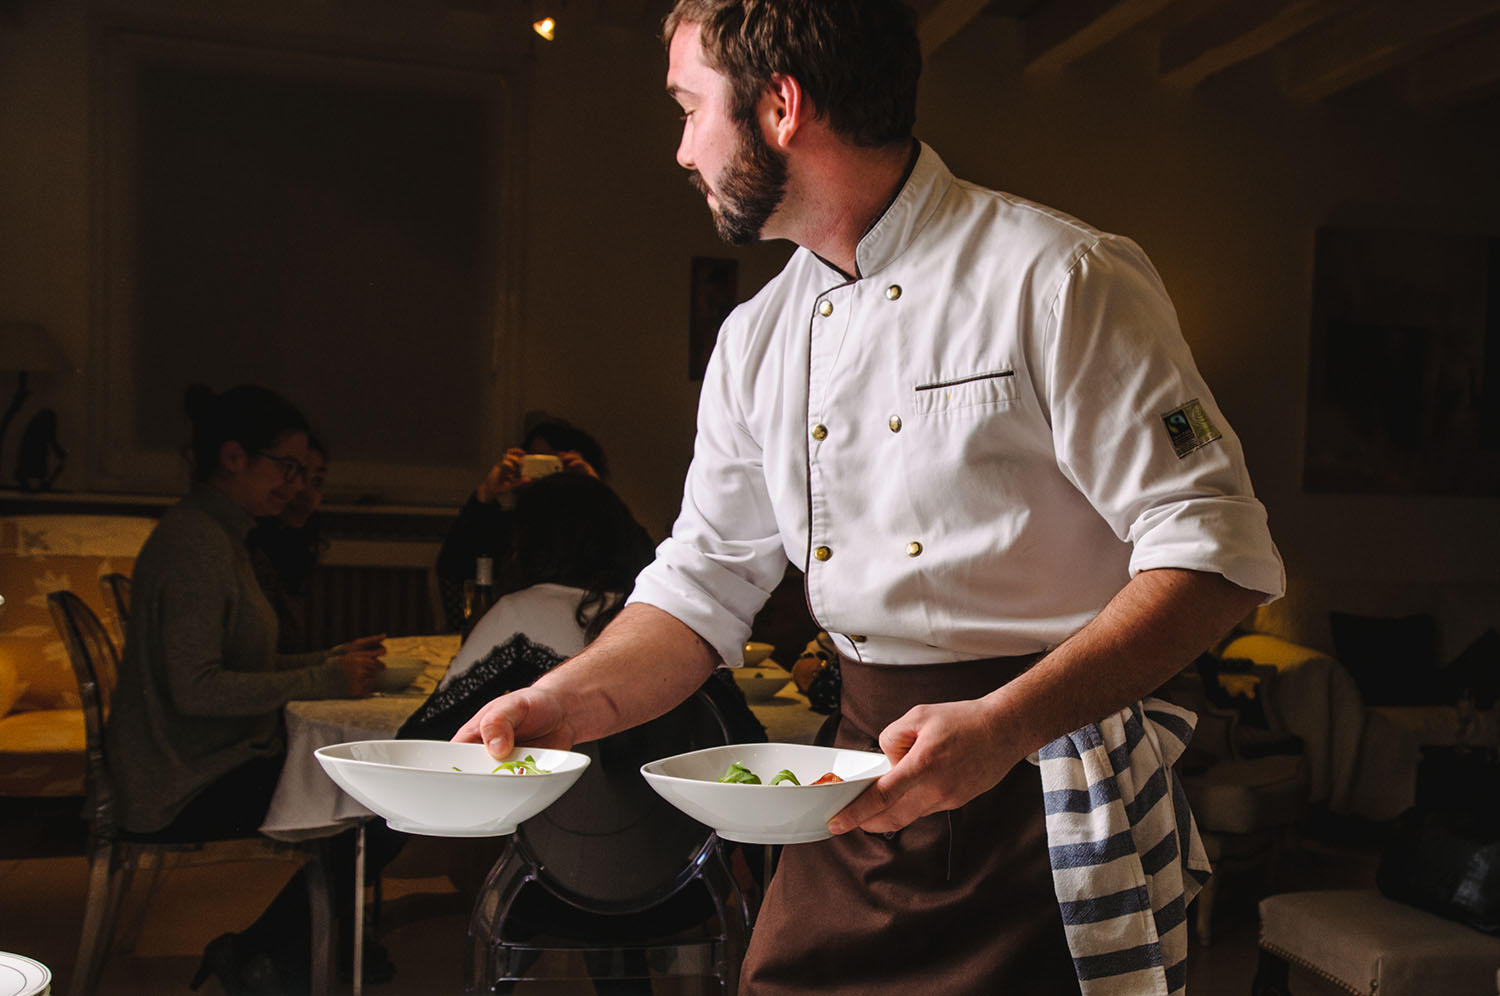 Professional chef serving dishes in a guest's home. © La Belle Assiette